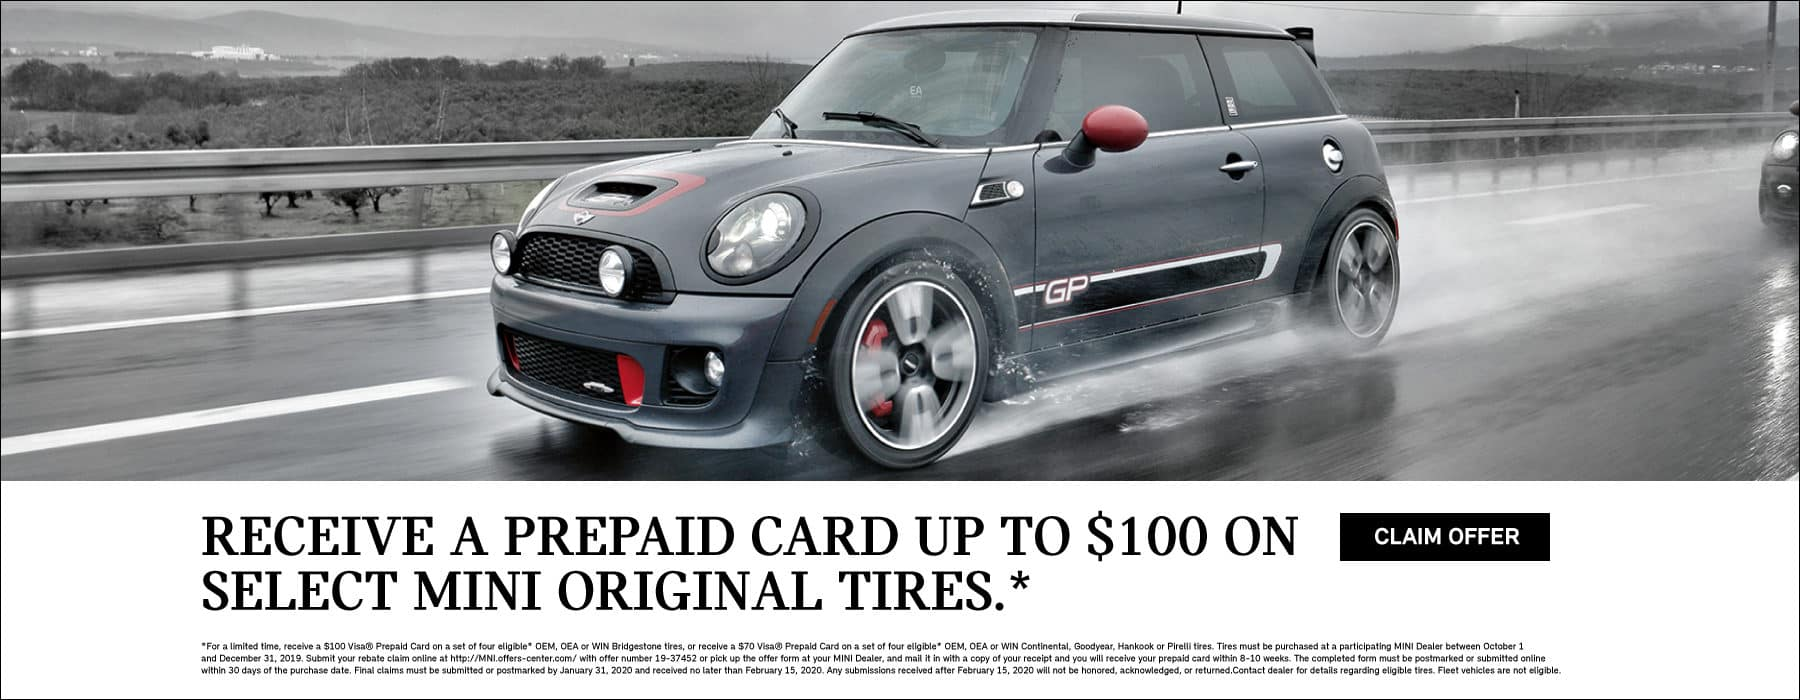 RECEIVE A PREPAID CARD UP TO $100 ON SELECT MINI ORIGINAL TIRES. Receive a $100 Visa® prepaid card with the purchase of four eligible* Bridgestone tires or a $70 Visa® prepaid card with the purchase of four eligible* Continental, Hankook or Pirelli tires.